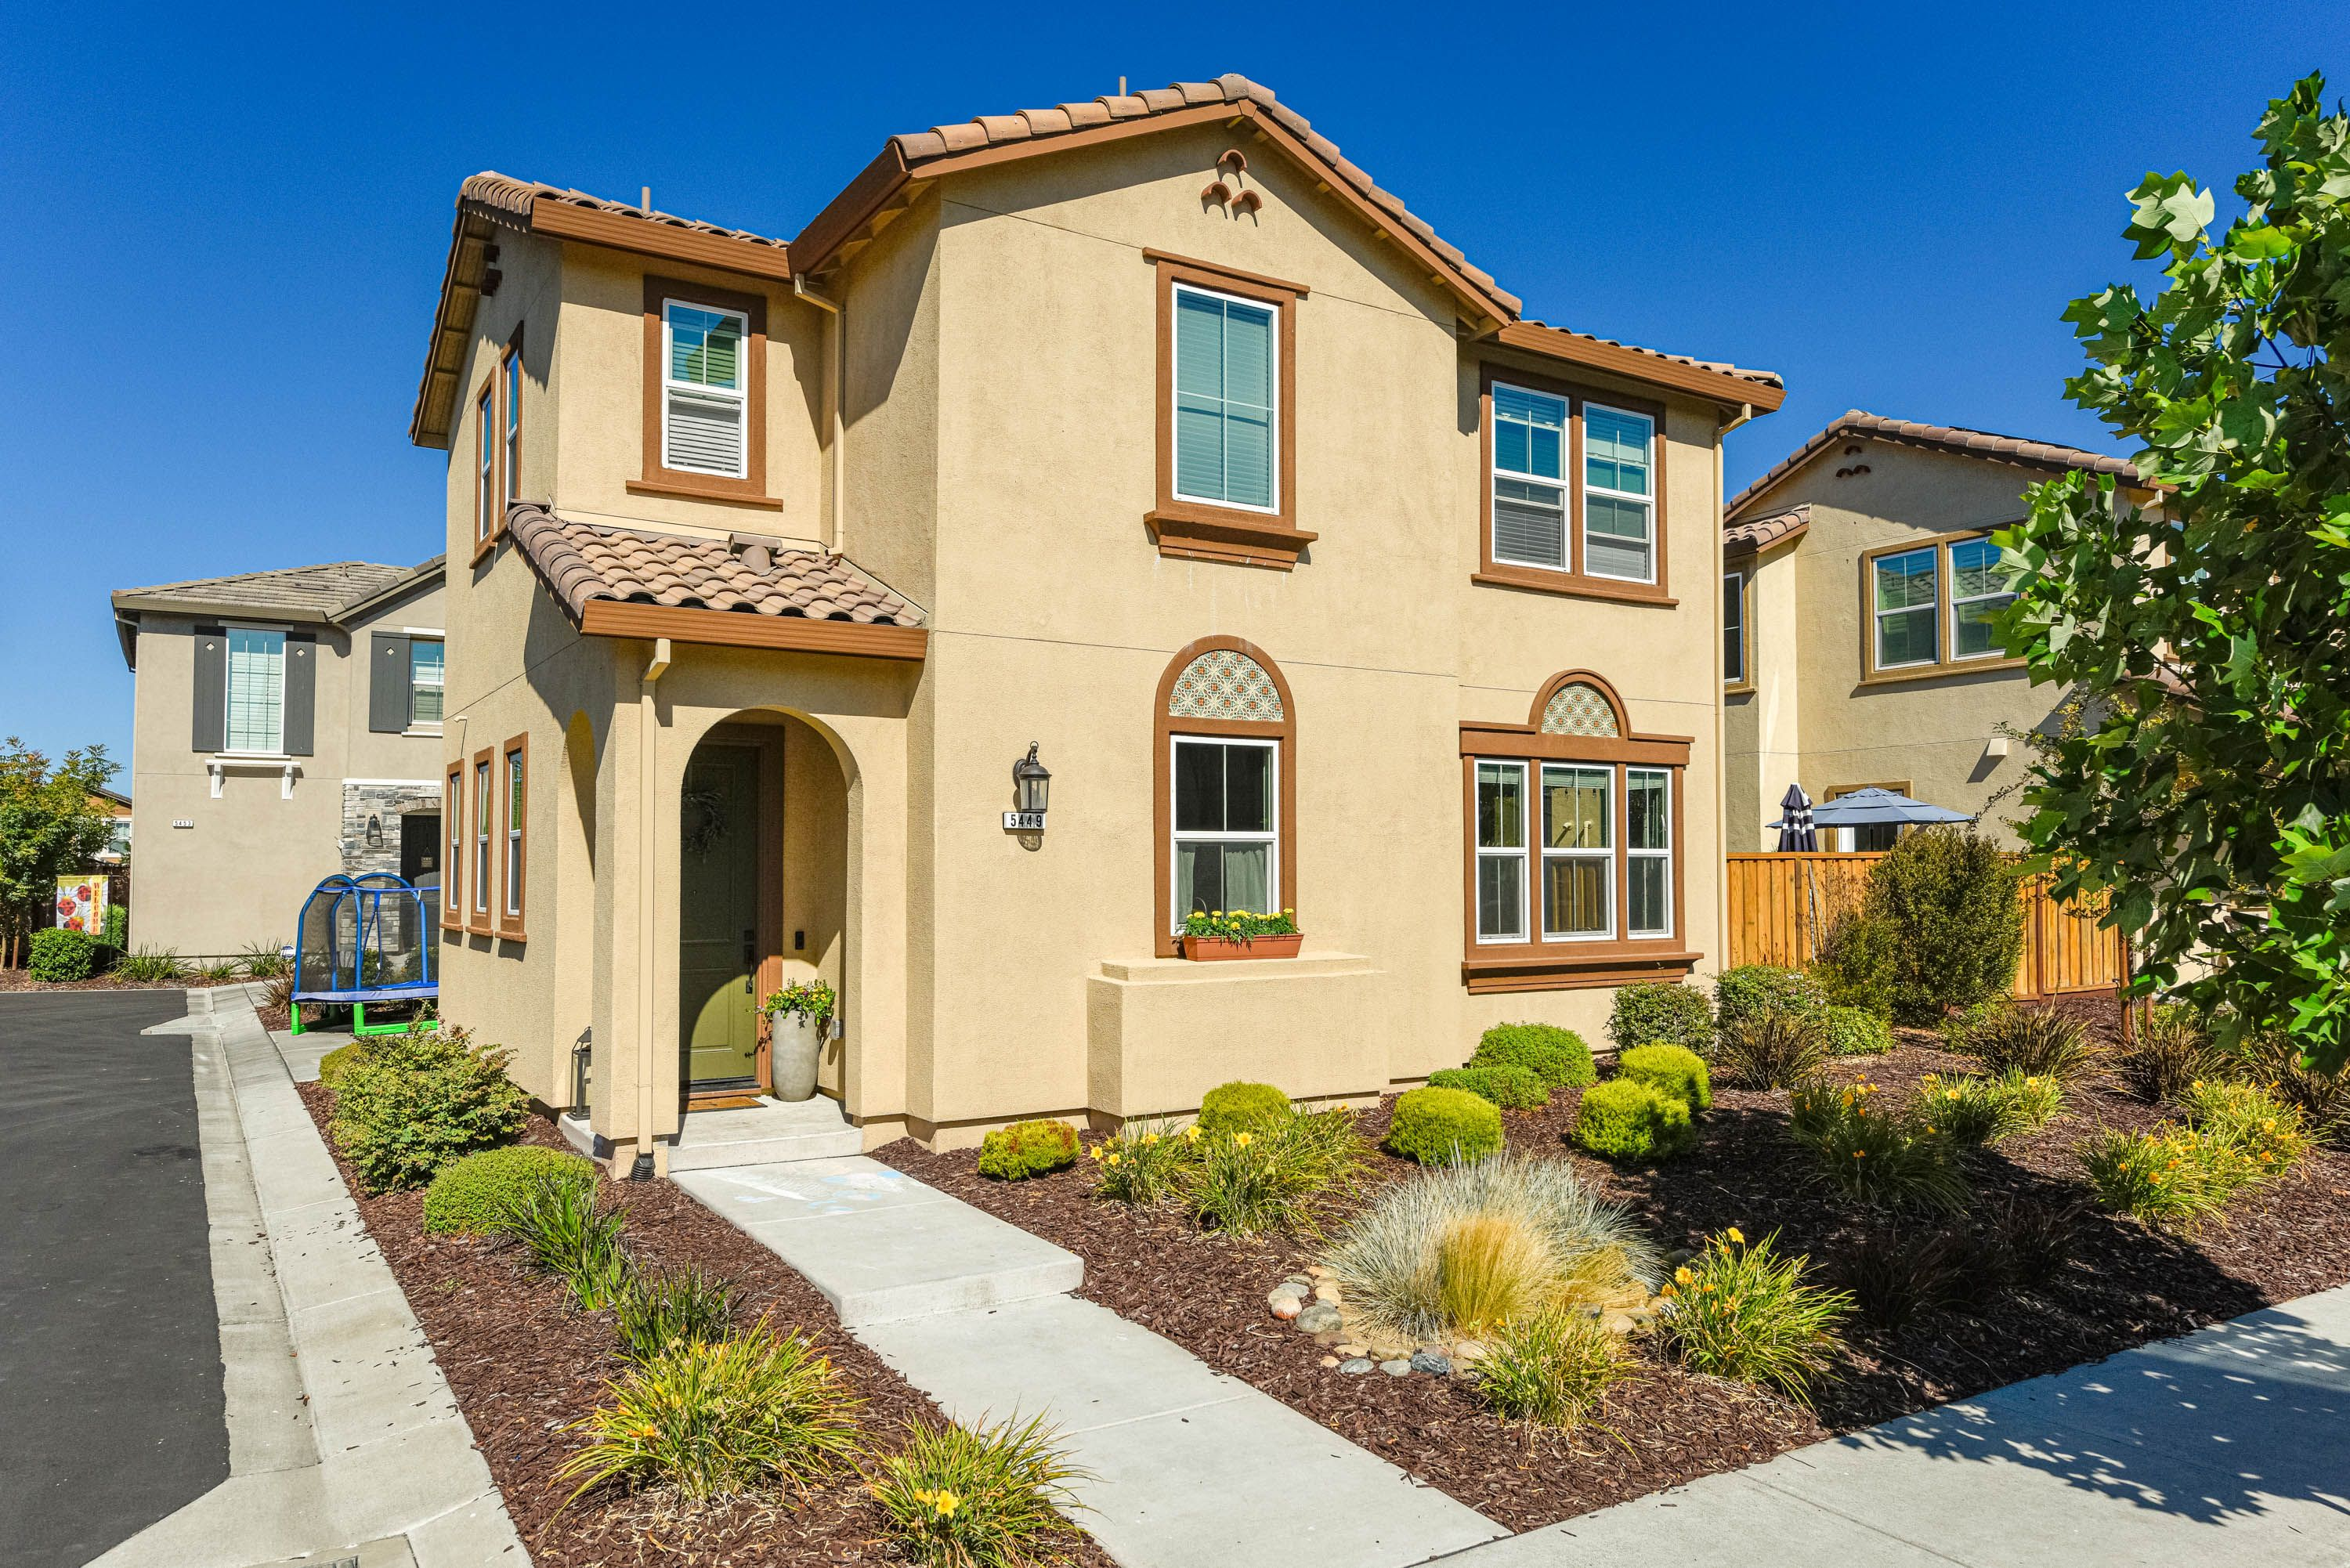 Newer 3 Bedroom Home For Sale In Rohnert Park Country Real Estate Rohnert Park Home